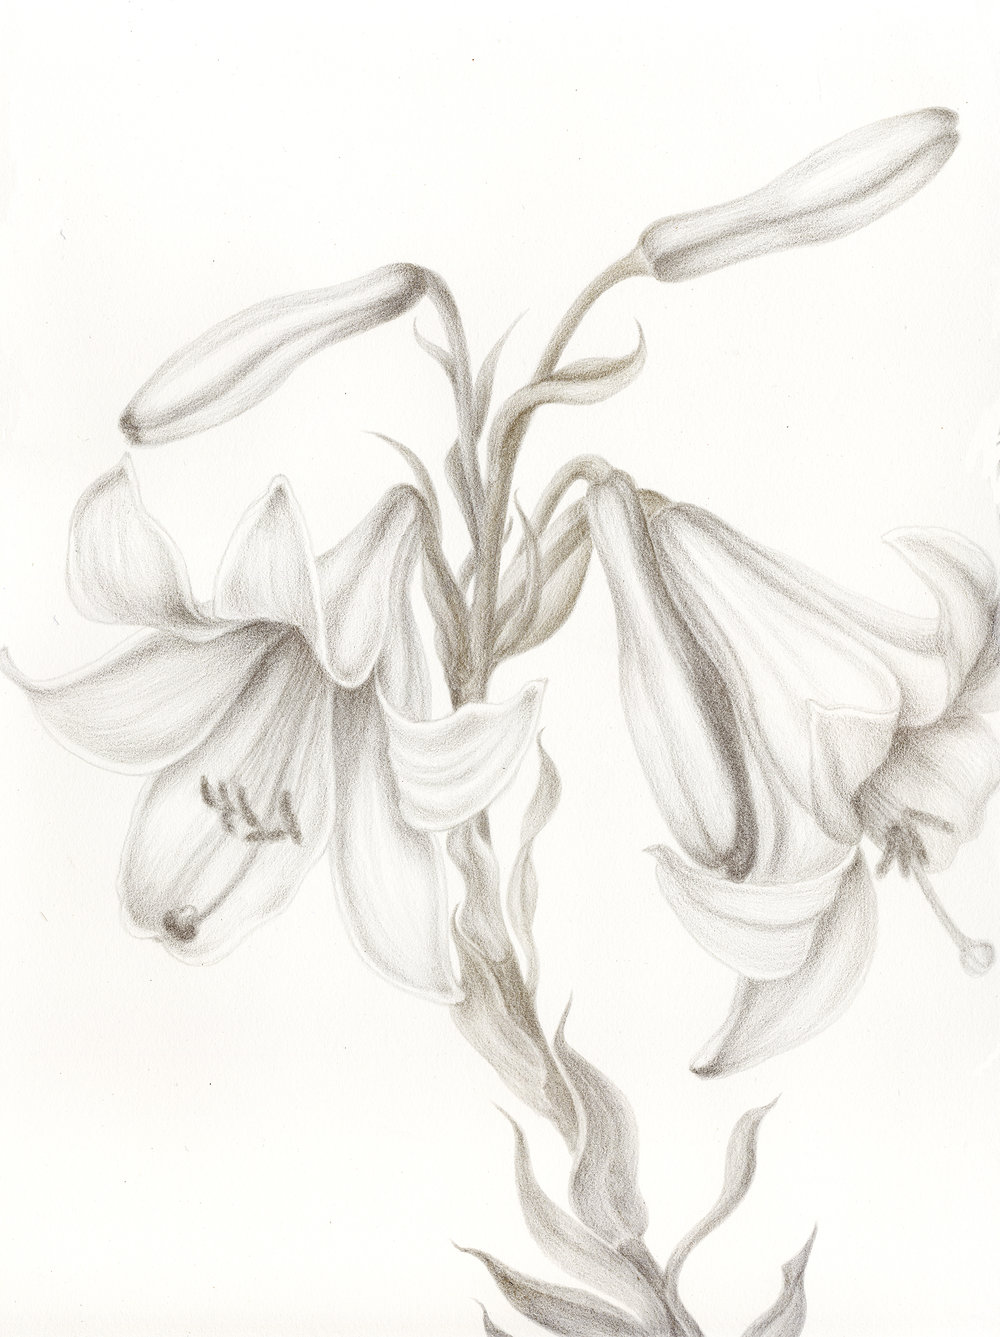 Azucena-Regale Lilies, silverpoint, Jeannine Cook artist